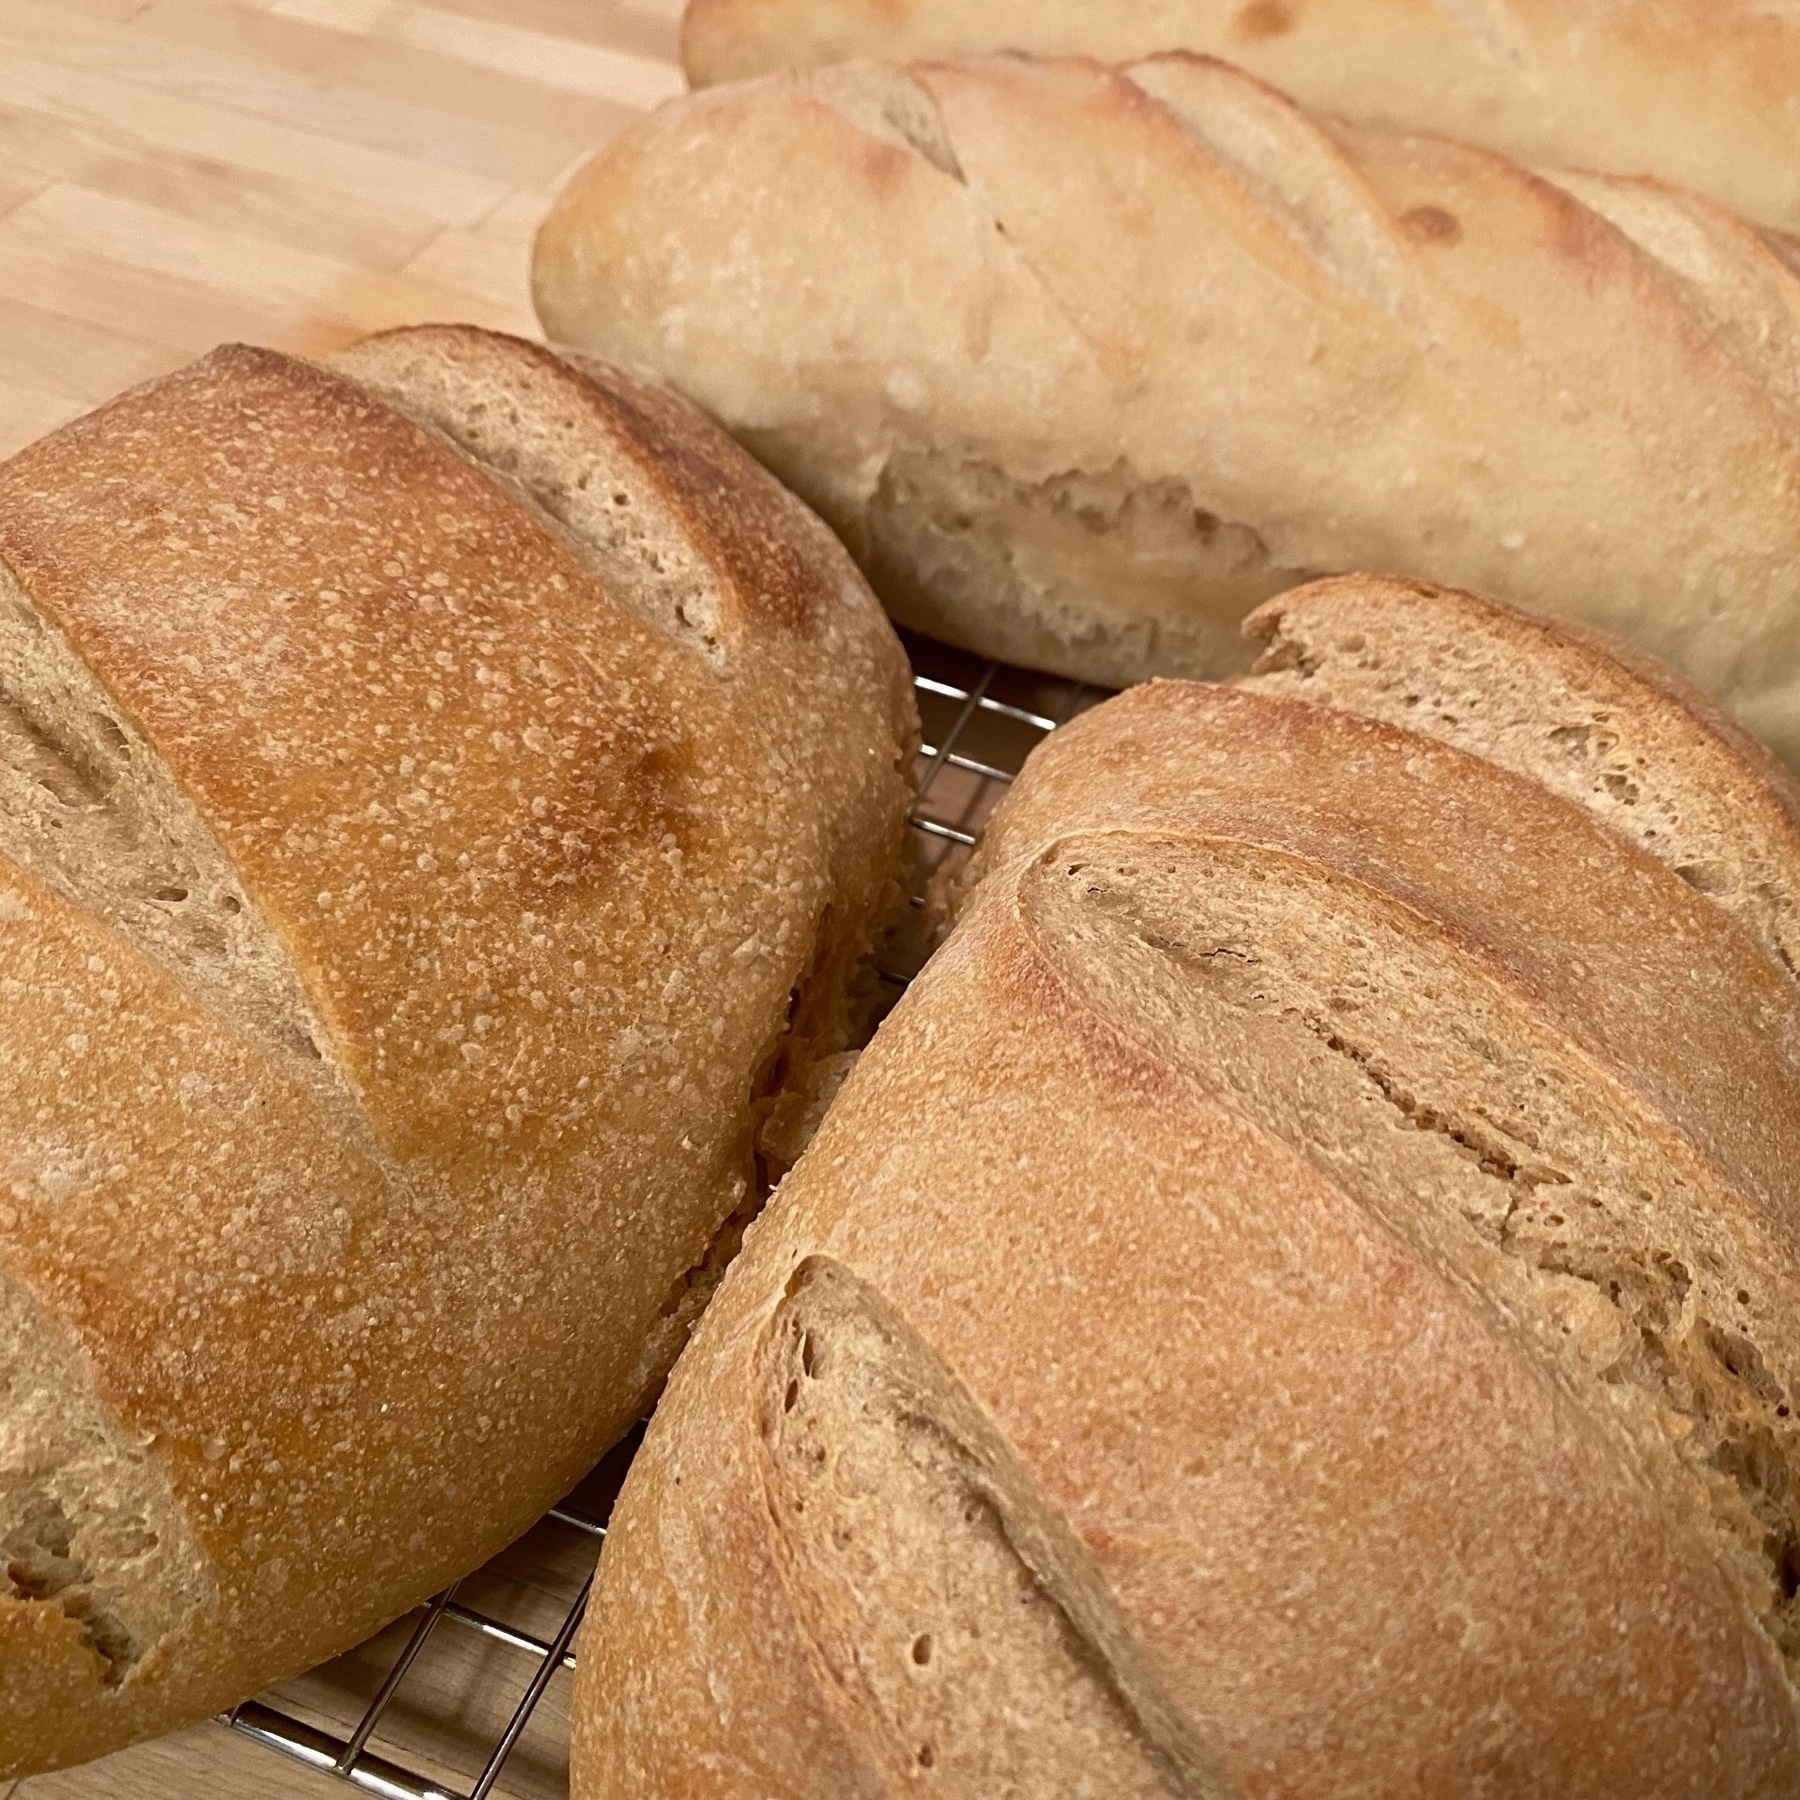 picture of multiple loaves of baked bread with deep slashes